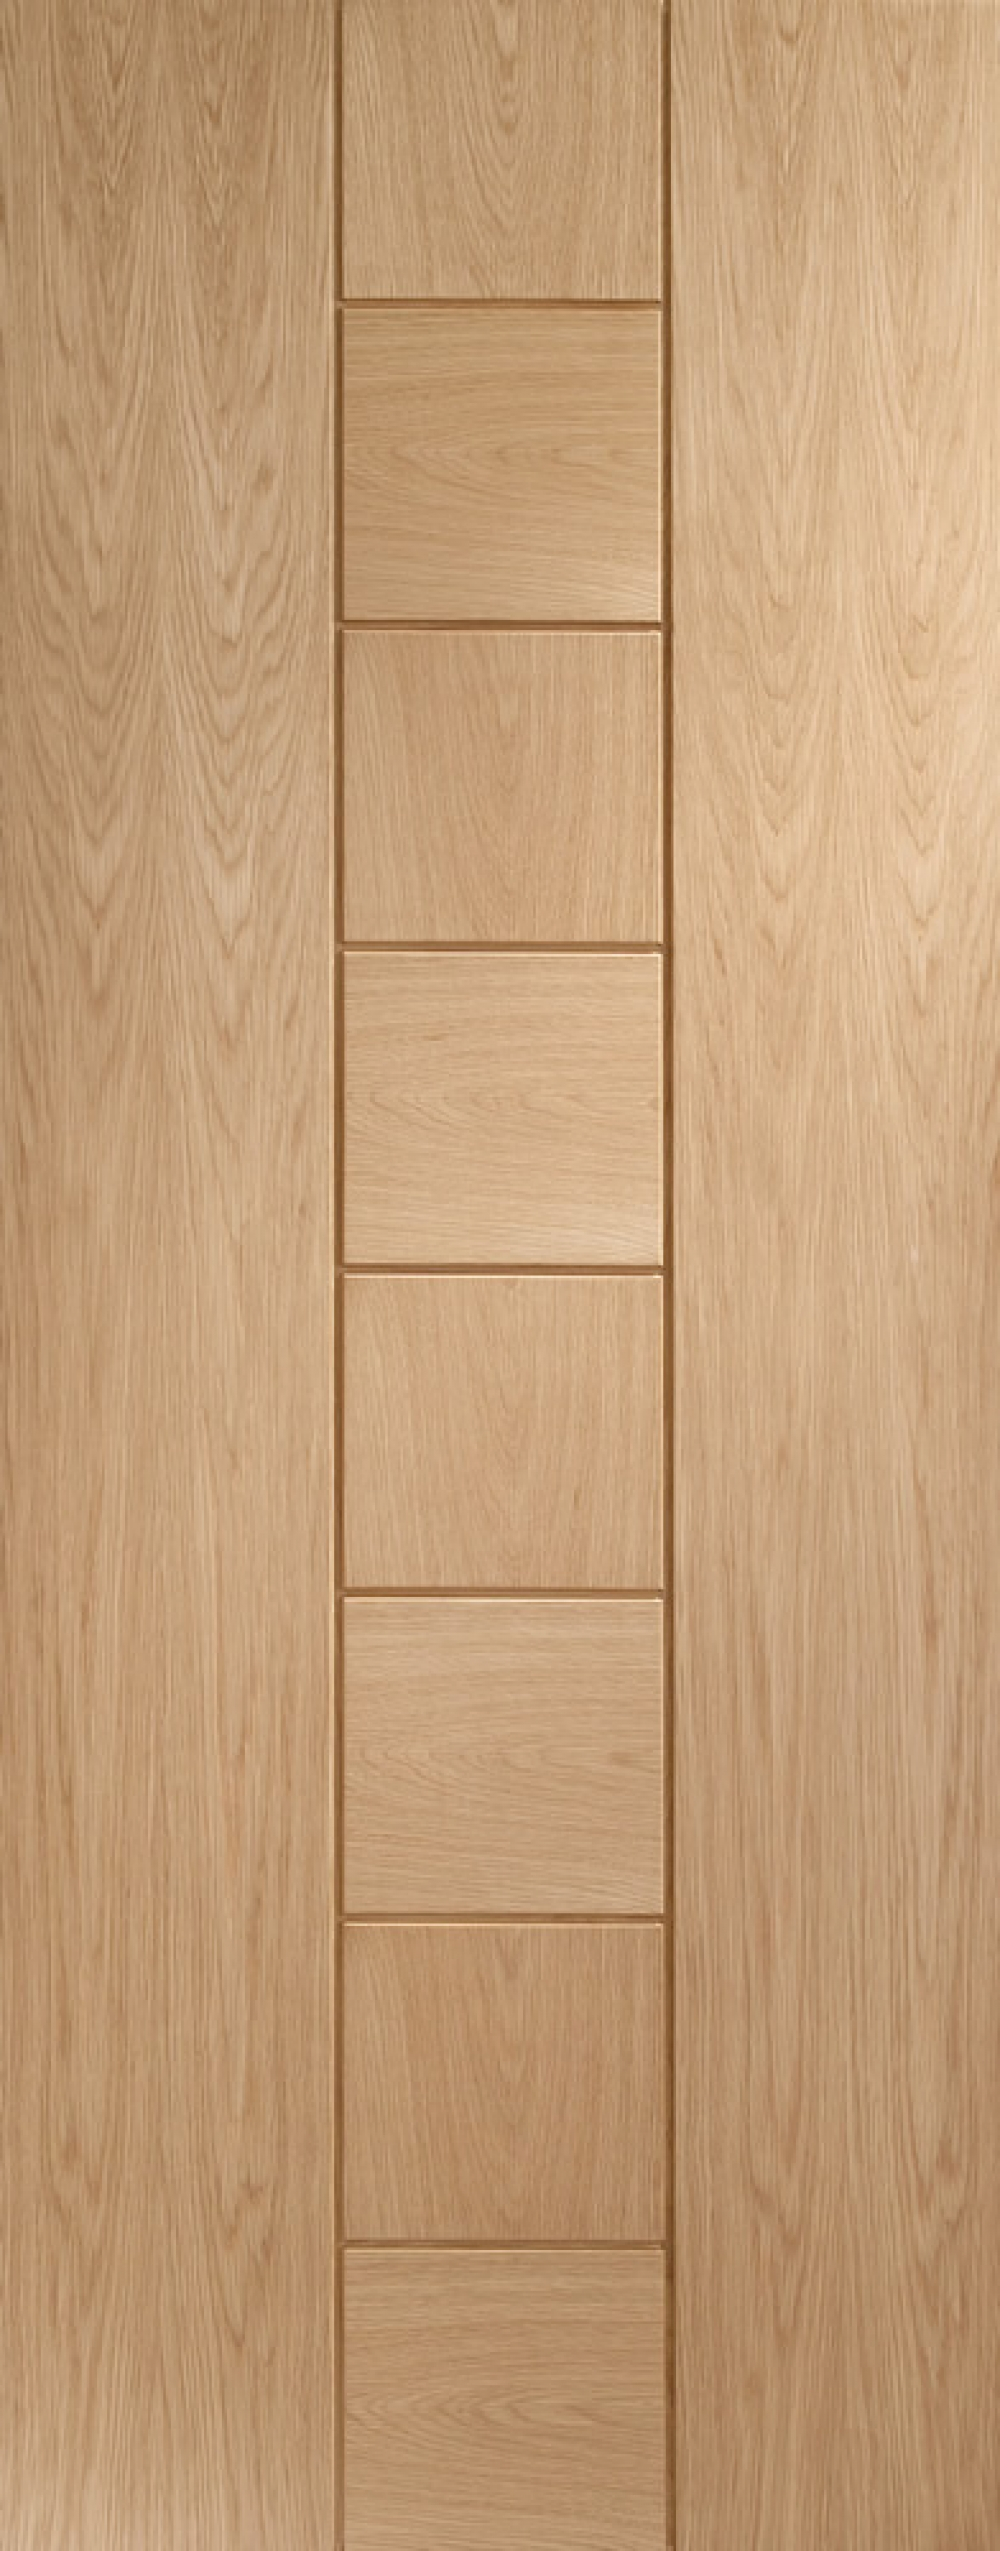 Messina Oak Door - PREFINISHED